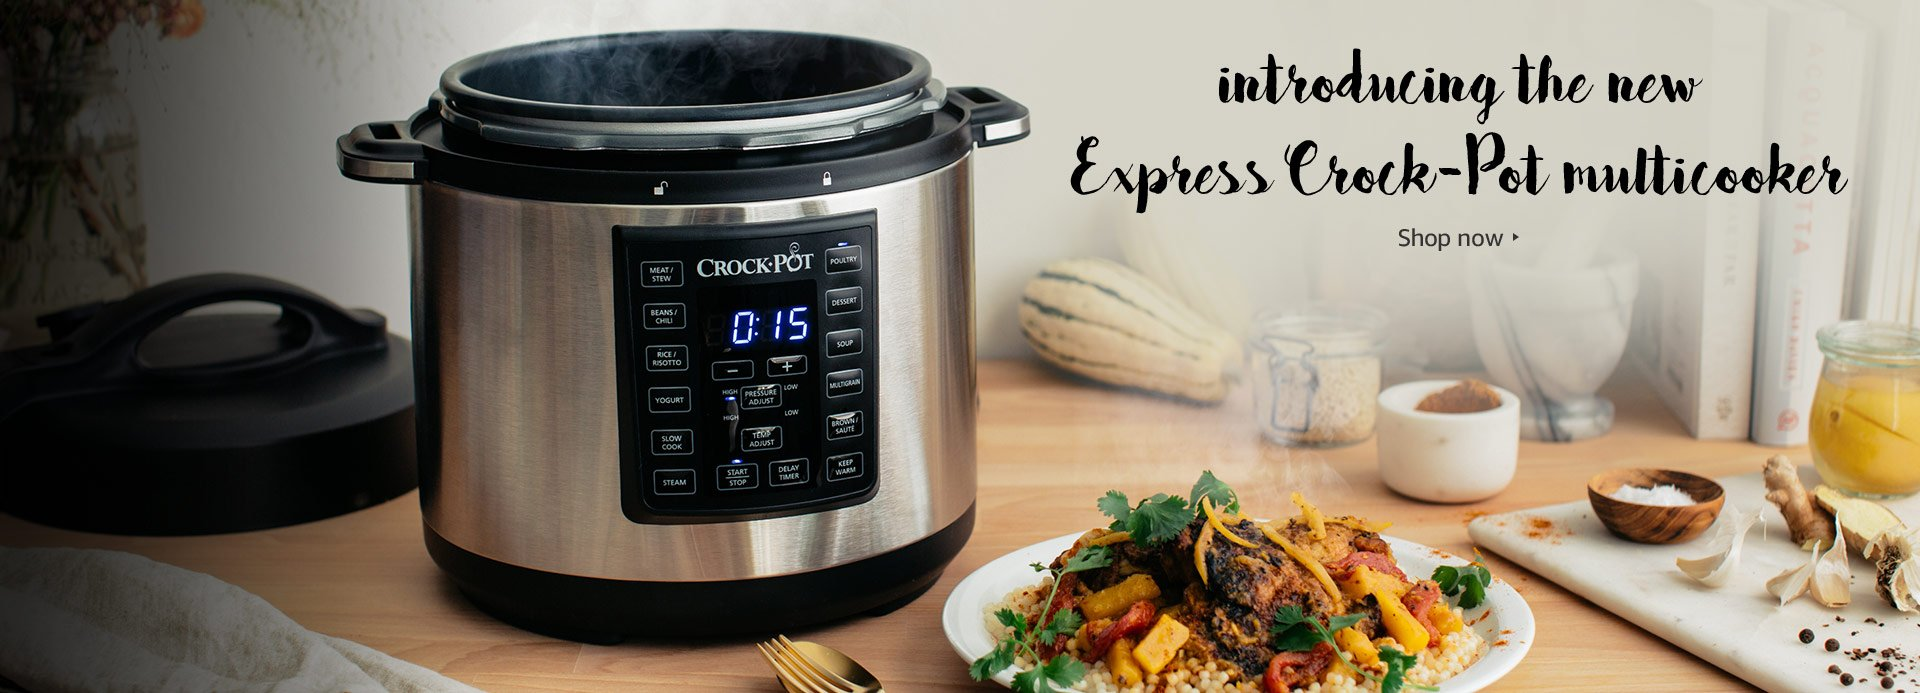 Kitchen Appliances From Amazon.com